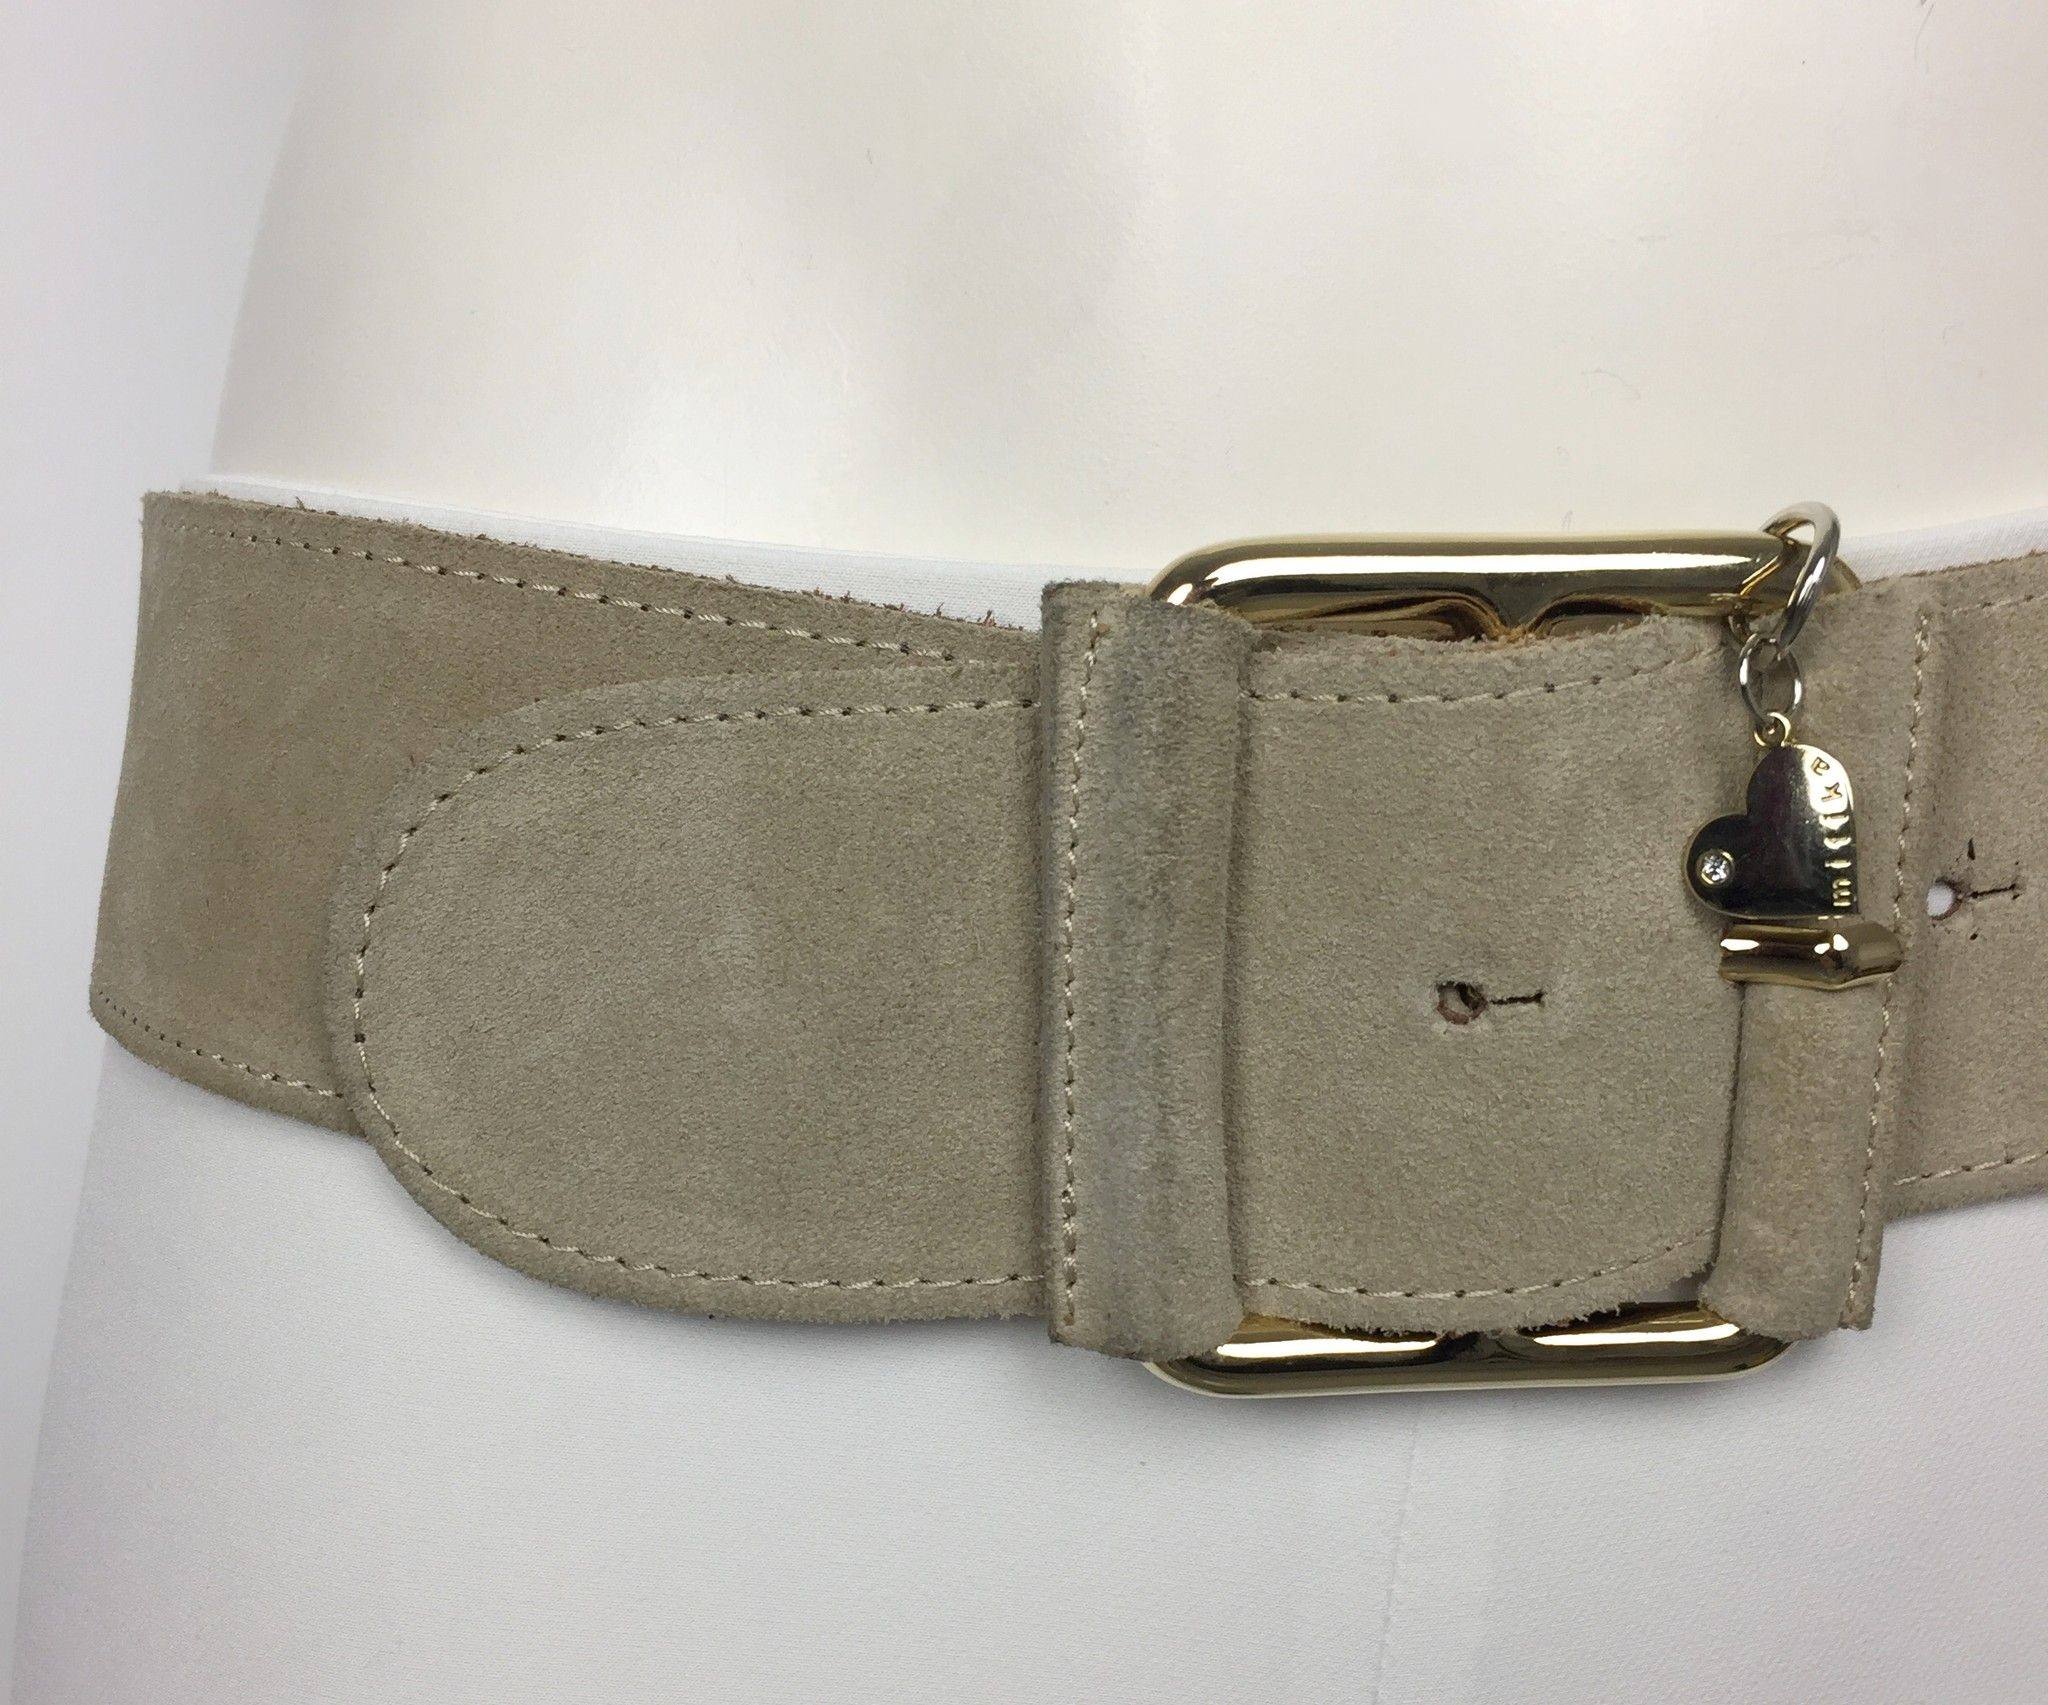 Mitika Suede Belt with Golden Square Buckle Cod.625494